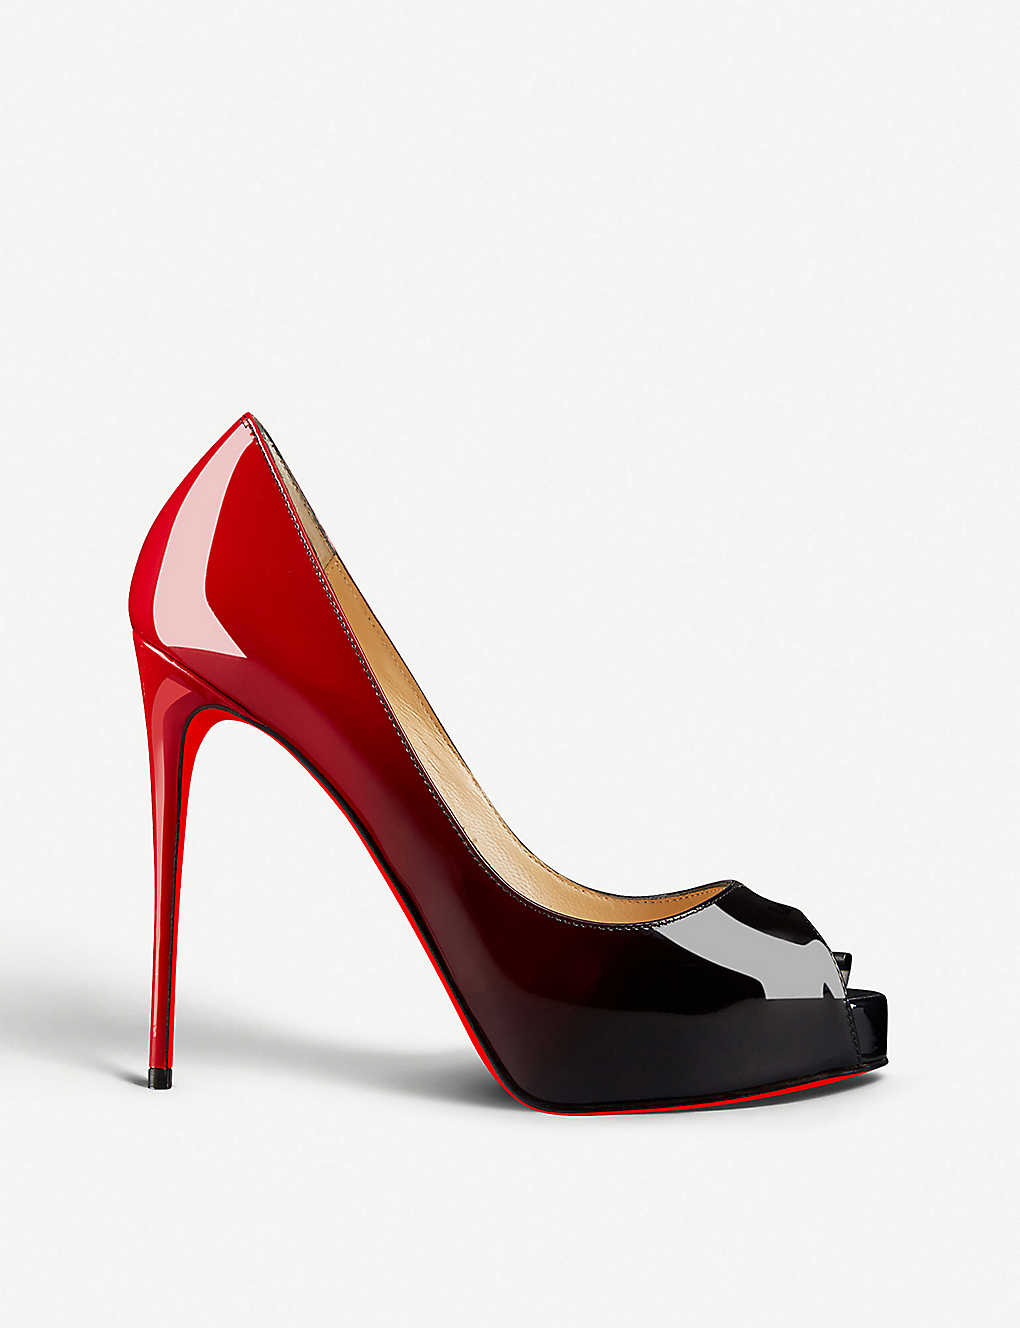 dd44acbfb4b8 CHRISTIAN LOUBOUTIN - New Very Prive 120 patent